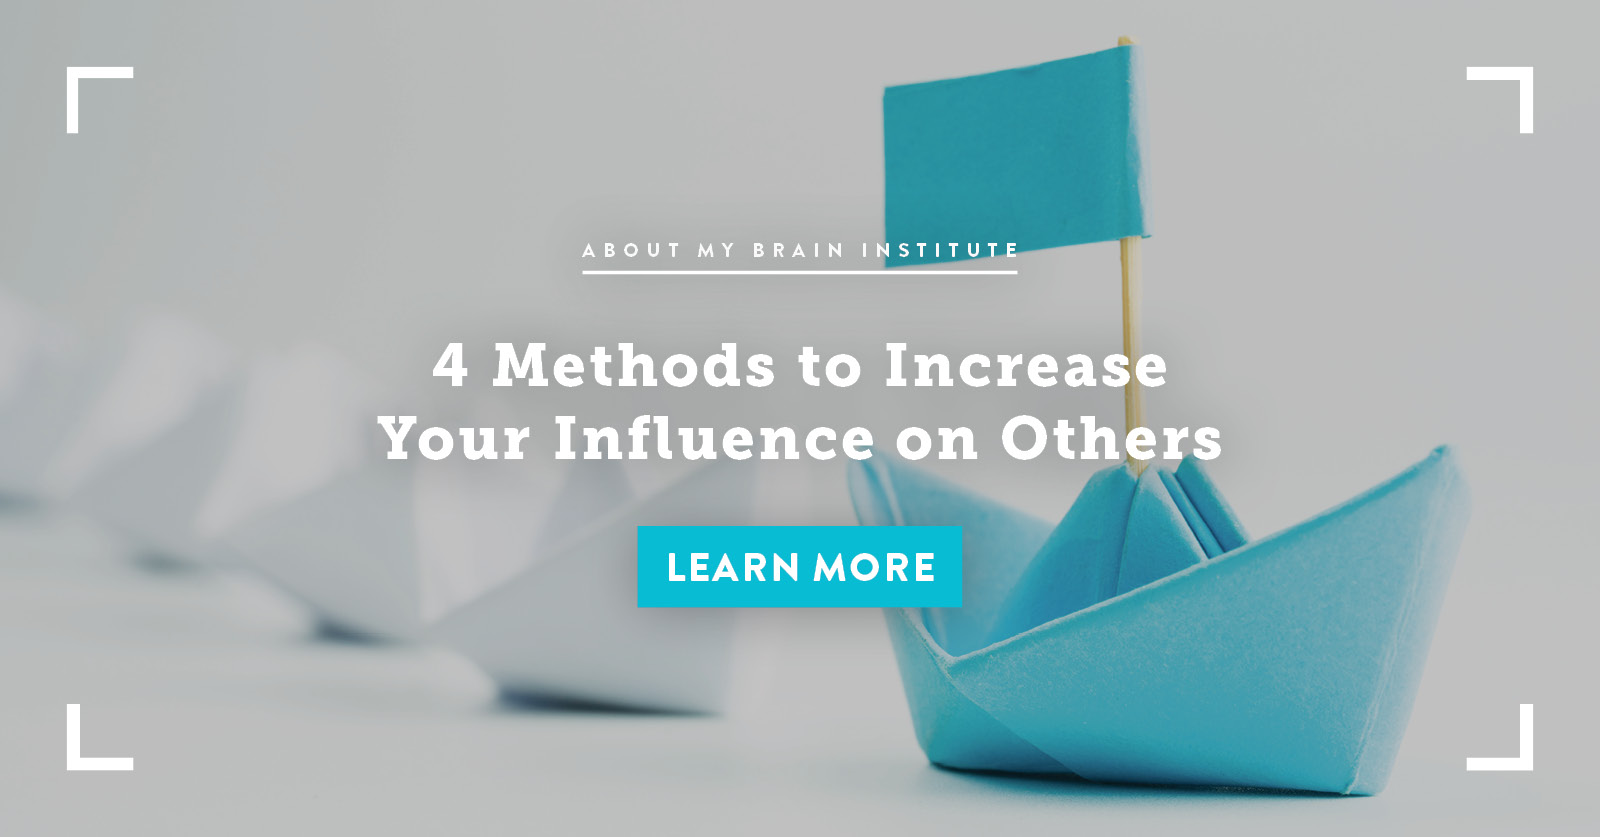 4 Methods to Increase Your Influence with Others